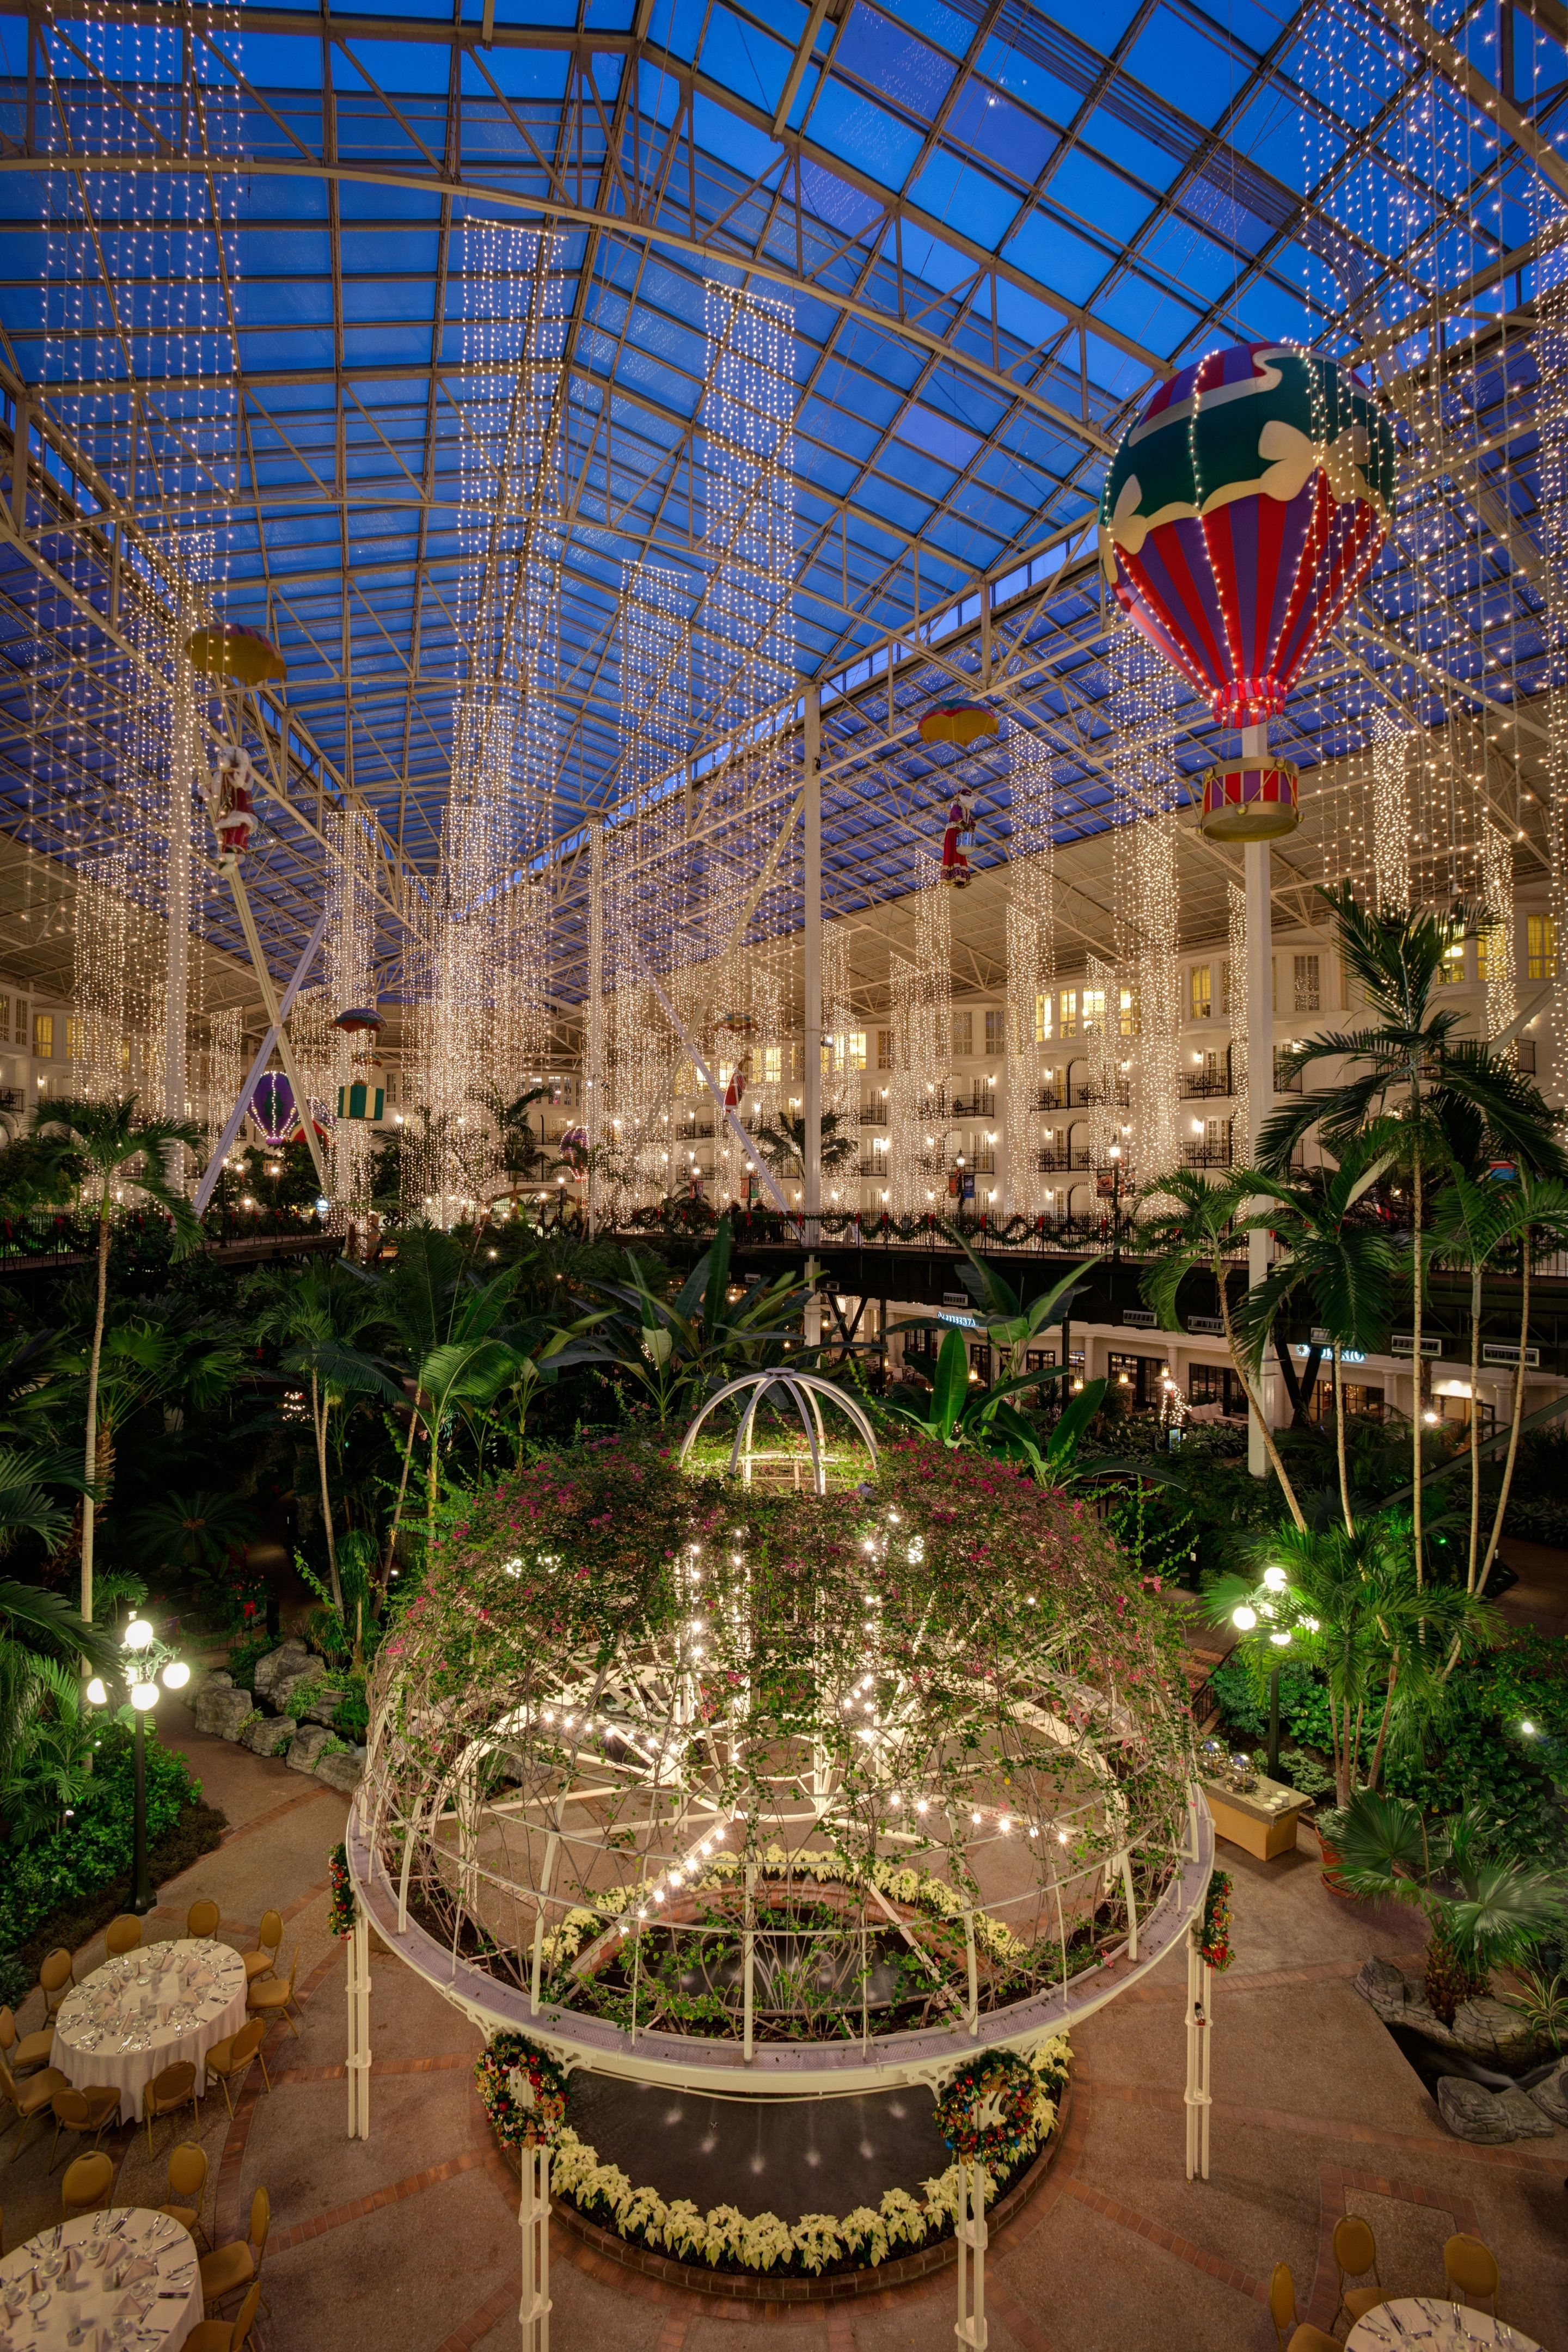 Opryland Garden Conservatory Atrium - lord Opryland Resort ... on indiana convention center map, san jose convention center map, boston convention center map, gaylord convention center map, new orleans convention center map, long beach convention center map, cleveland convention center map, grand ole opry map,